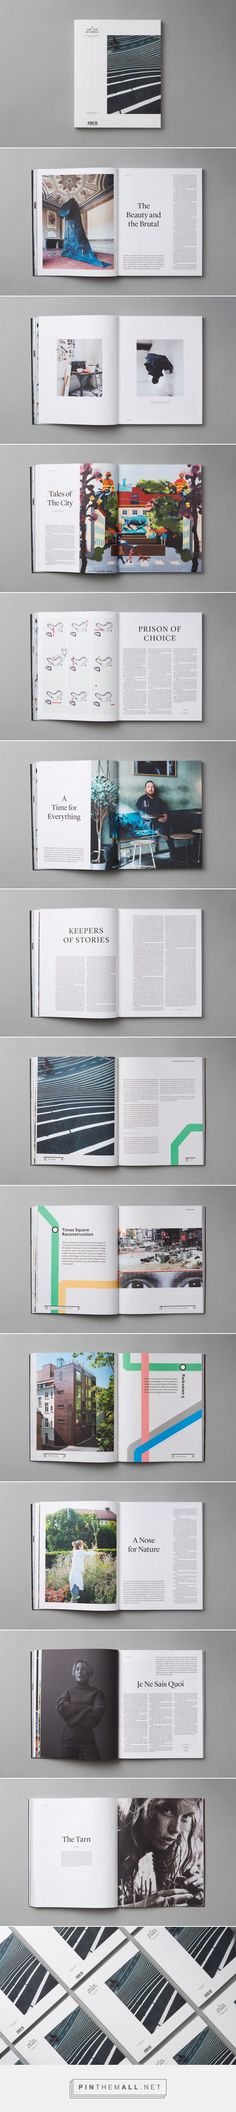 A New Type of Imprint VOL. 8 - Editorial Design